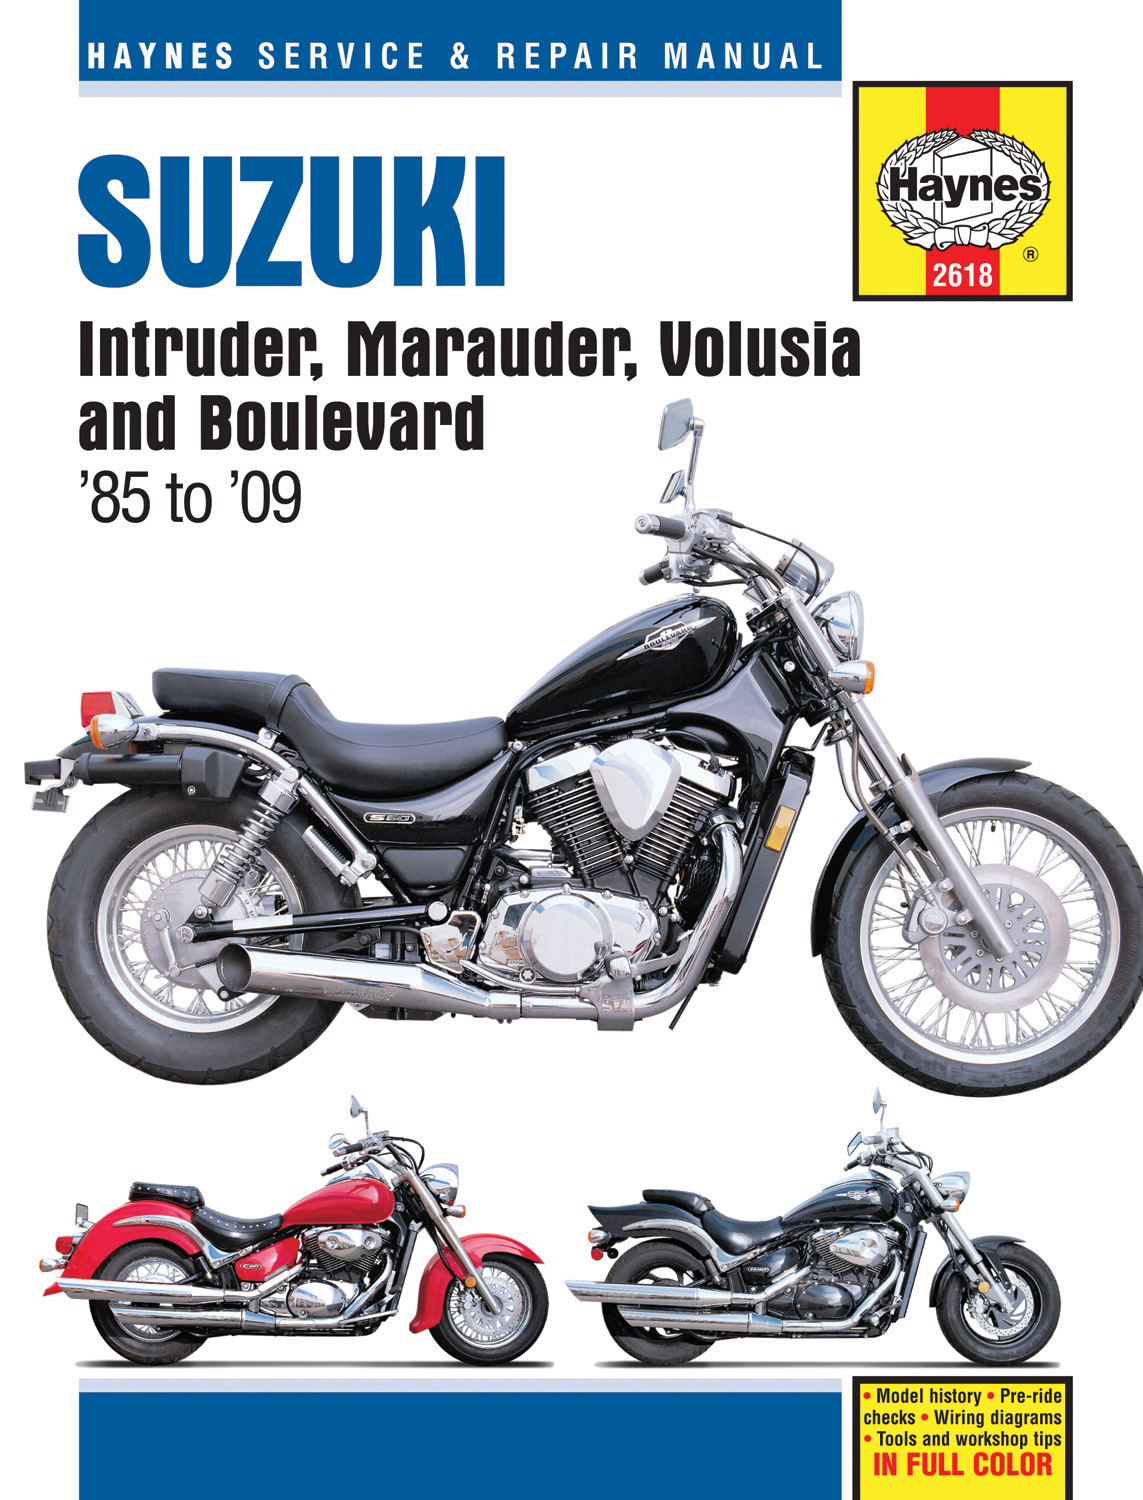 Sentinel SHOP REPAIR SERVICE MANUAL Suzuki Intruder Marauder Volusia  Boulevard HAYNES